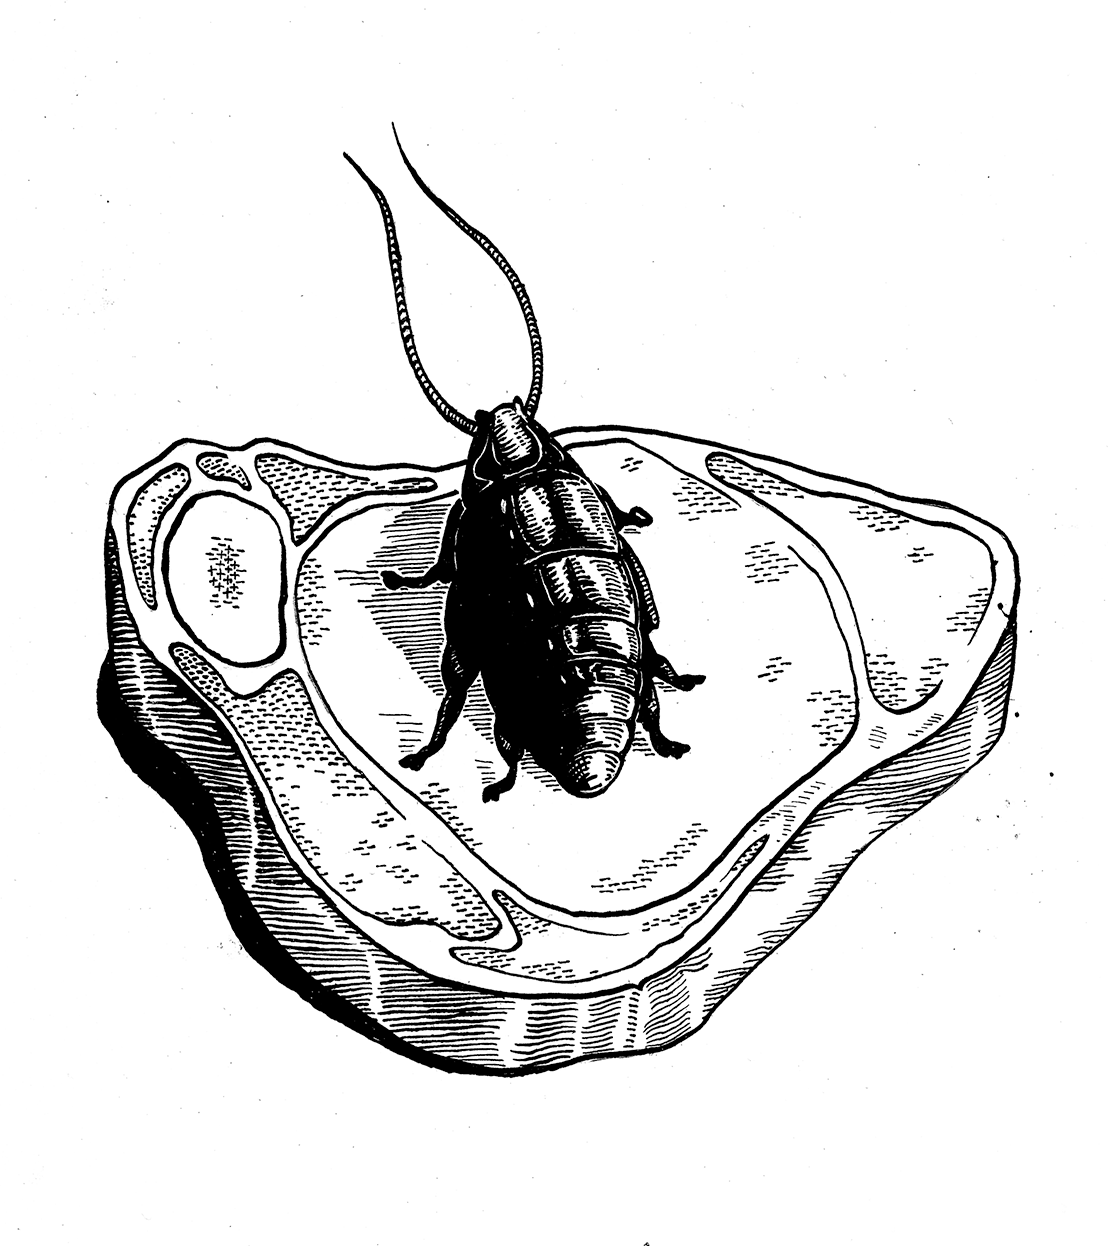 A cockroach on a piece of meat